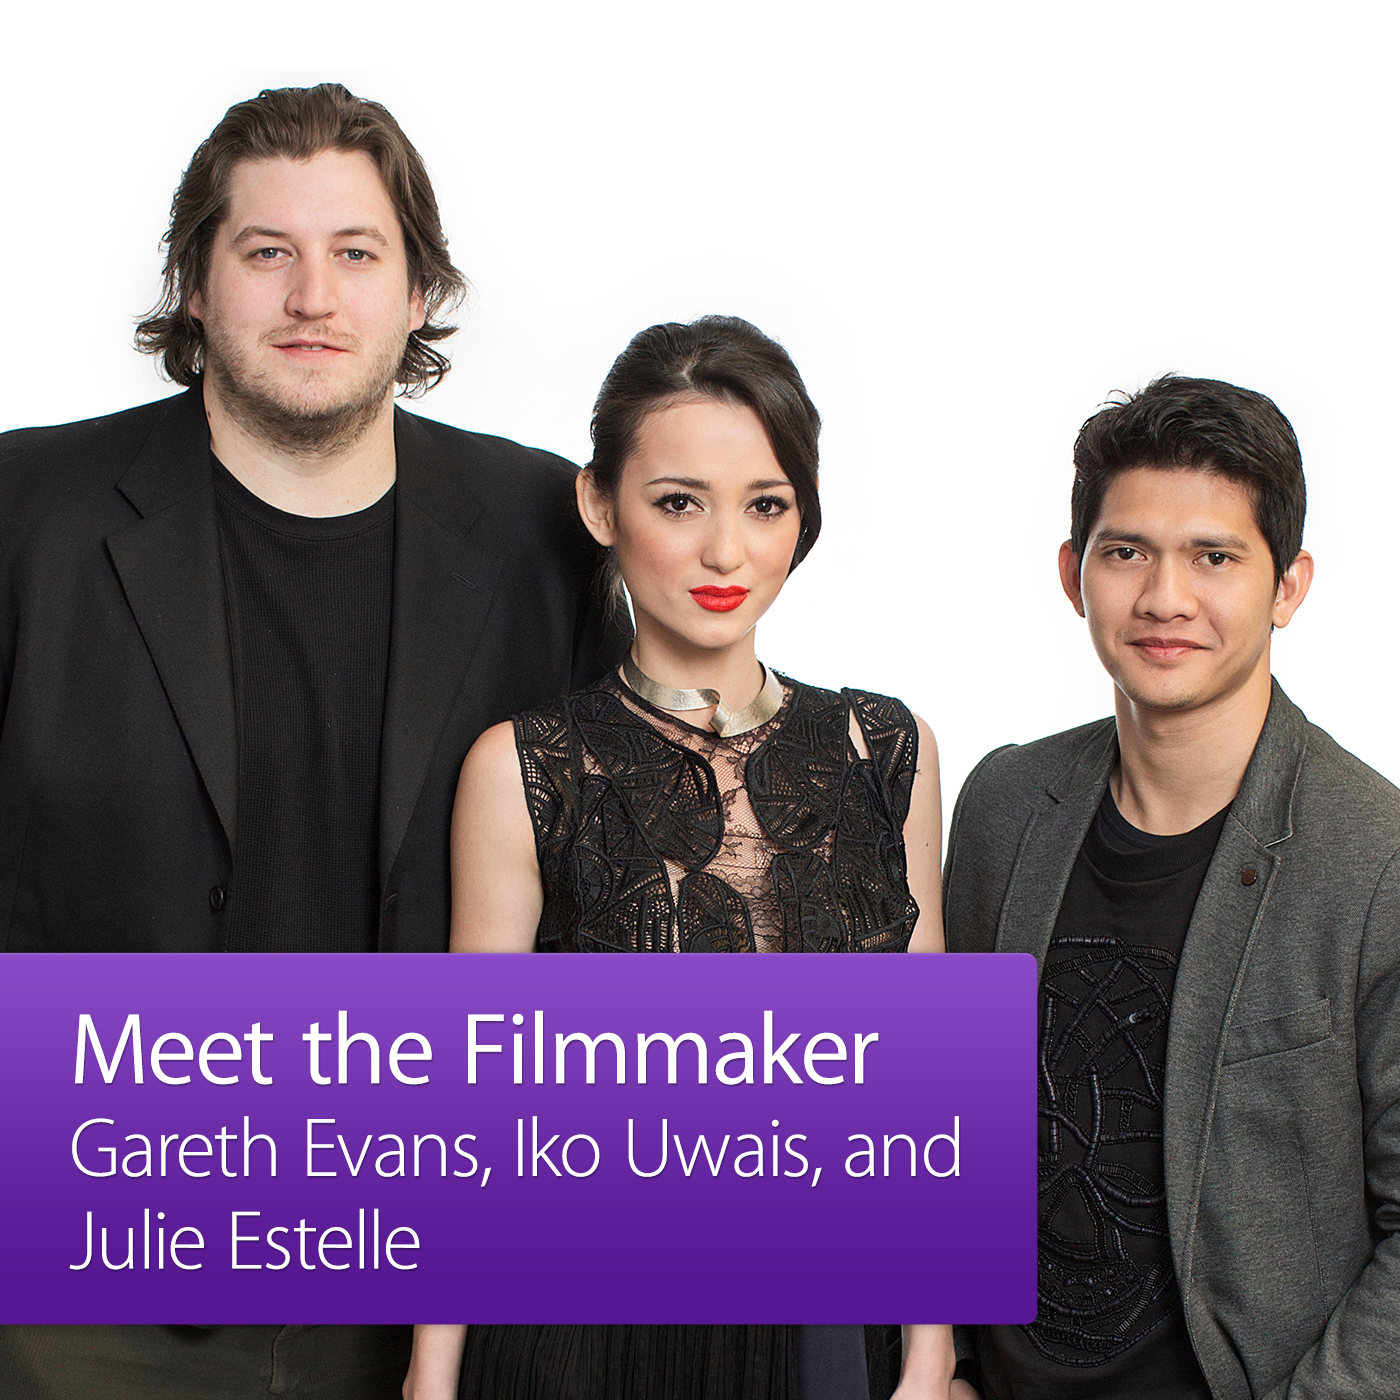 Gareth Evans, Iko Uwais, and Julie Estelle: Meet the Filmmaker